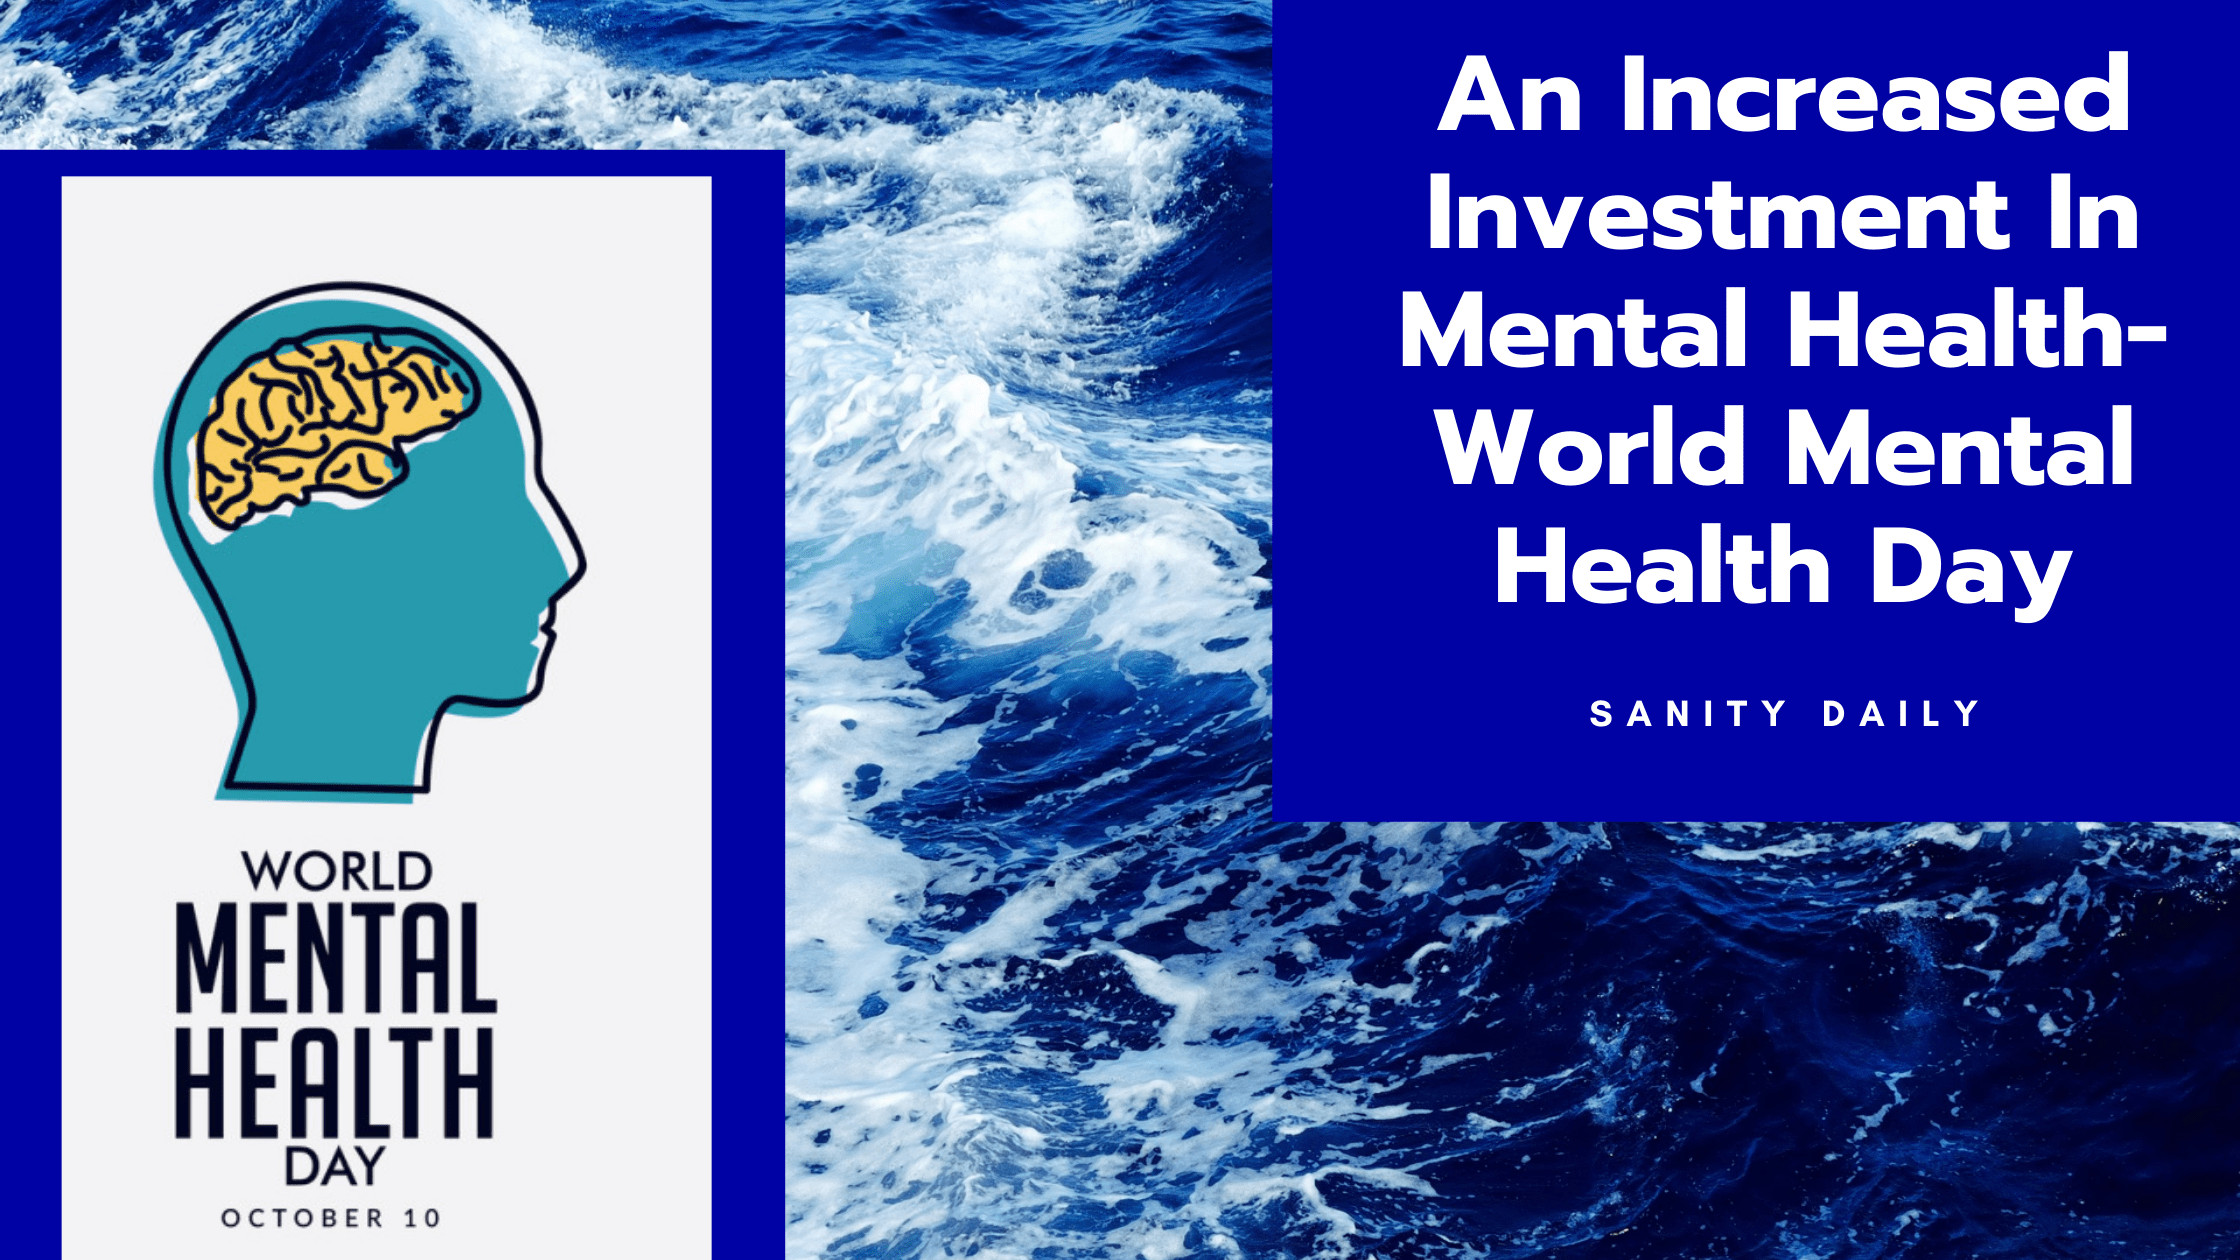 An Increased Investment In Mental Health-World Mental Health Day